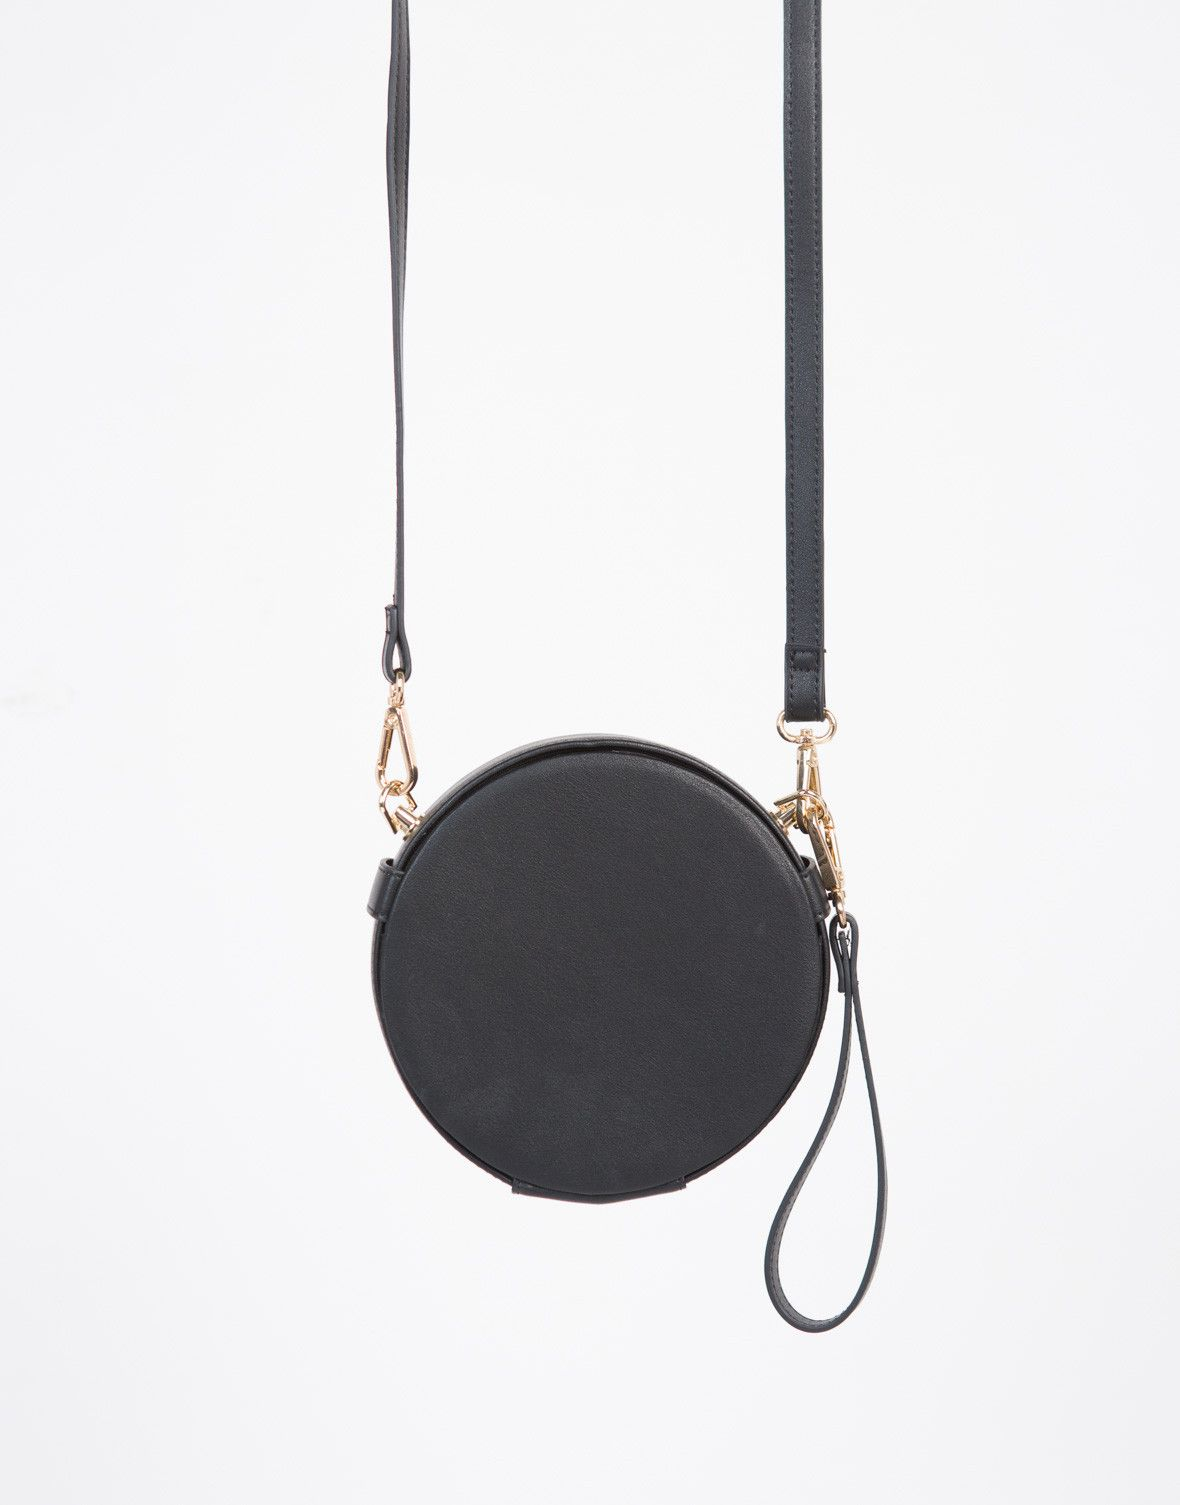 Show Off Some Individuality With This Round Crossbody Bag Comes In A Variety Of Colors Made From Faux Leather Material Features Shape